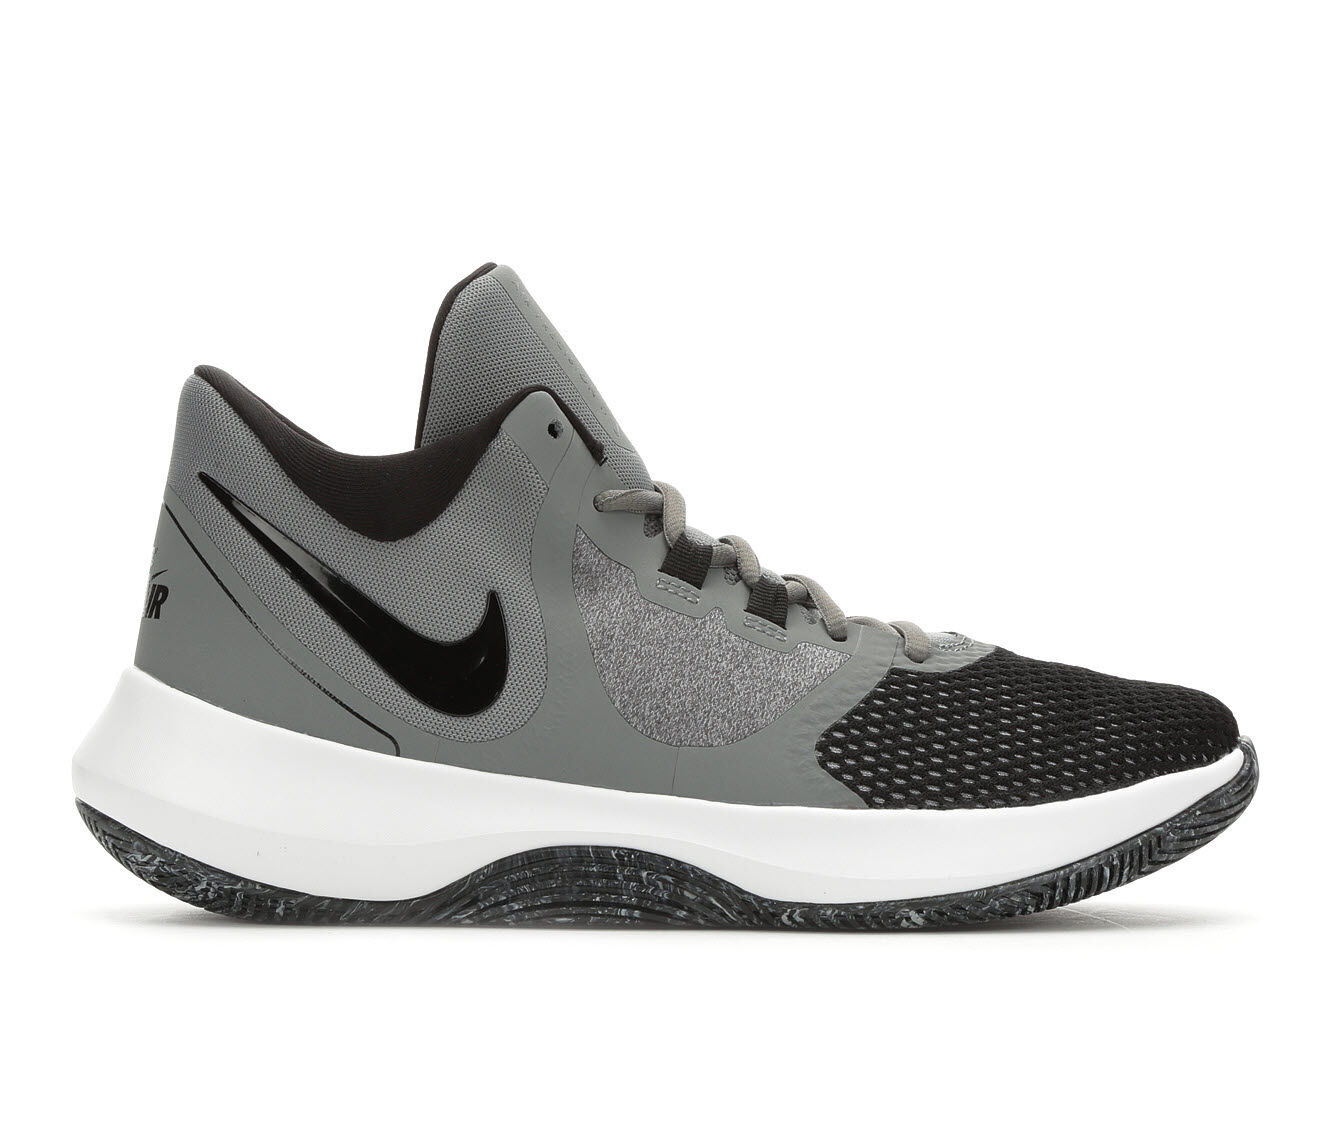 Superior Quality Men's Nike Air Precision II High Top Basketball Shoes Gry/Blk/Wht 011